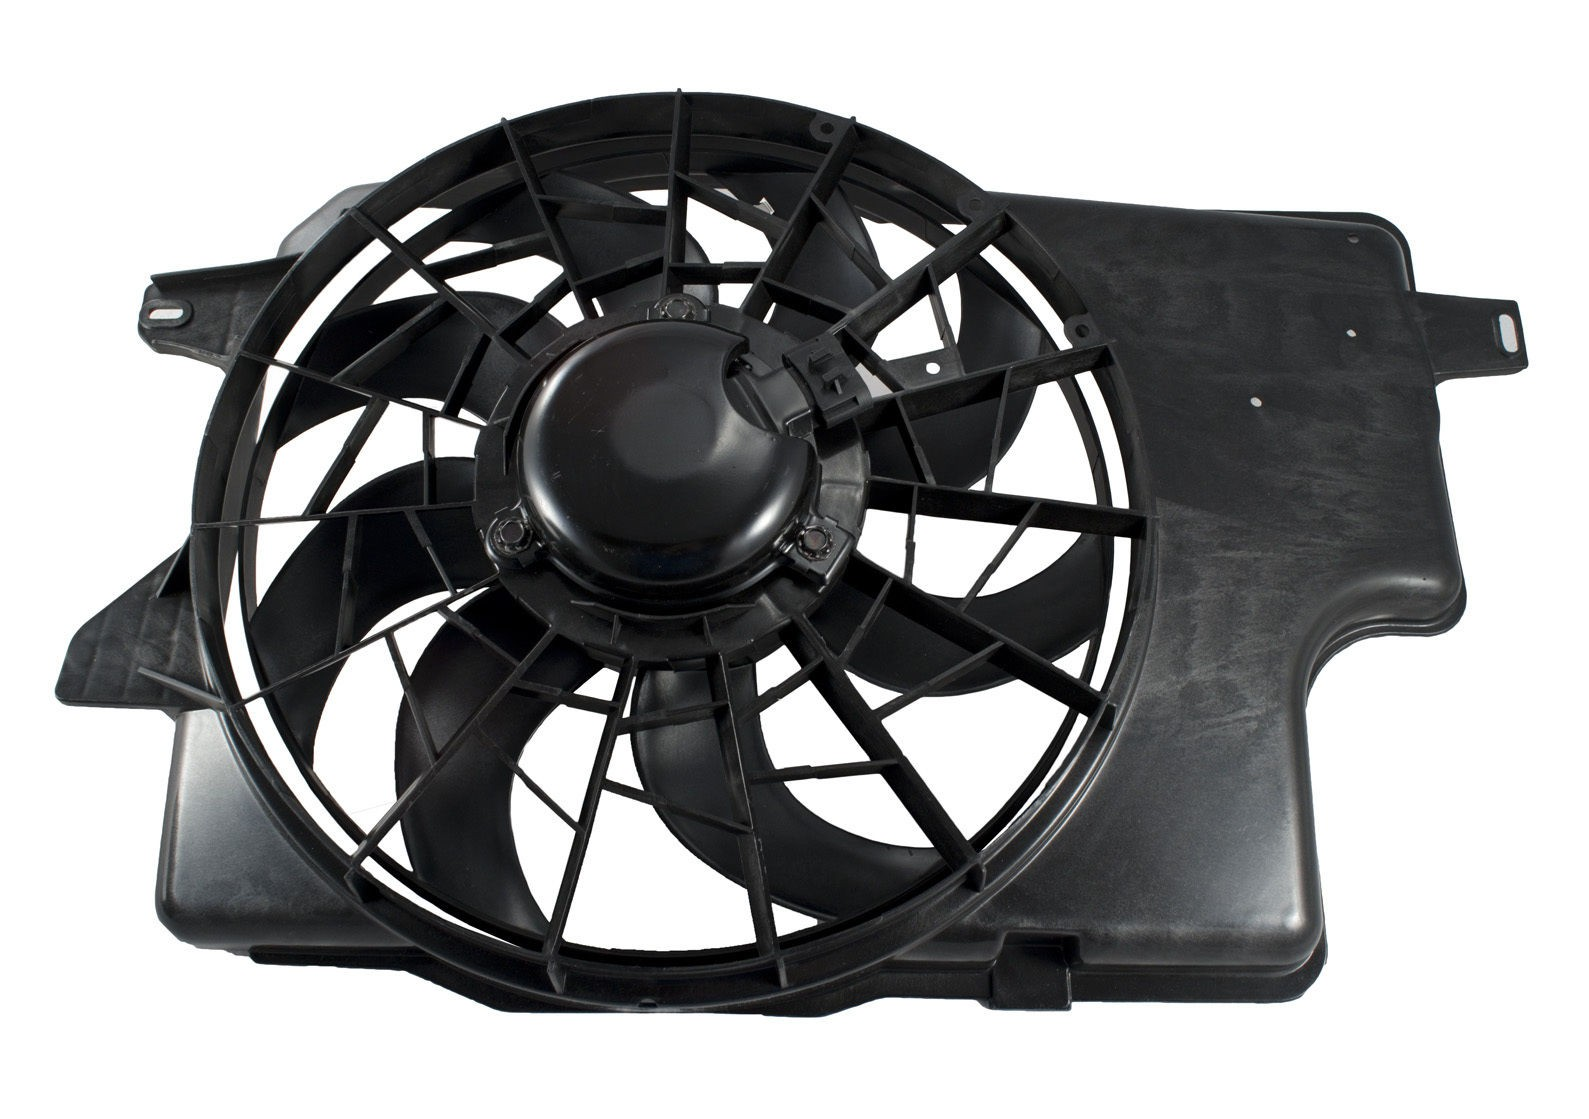 New Ford Focus >> 1994-1996 Mustang V6 3.8L Radiator Electric Engine Cooling Fan, Shoud Motor Unit - Engine ...